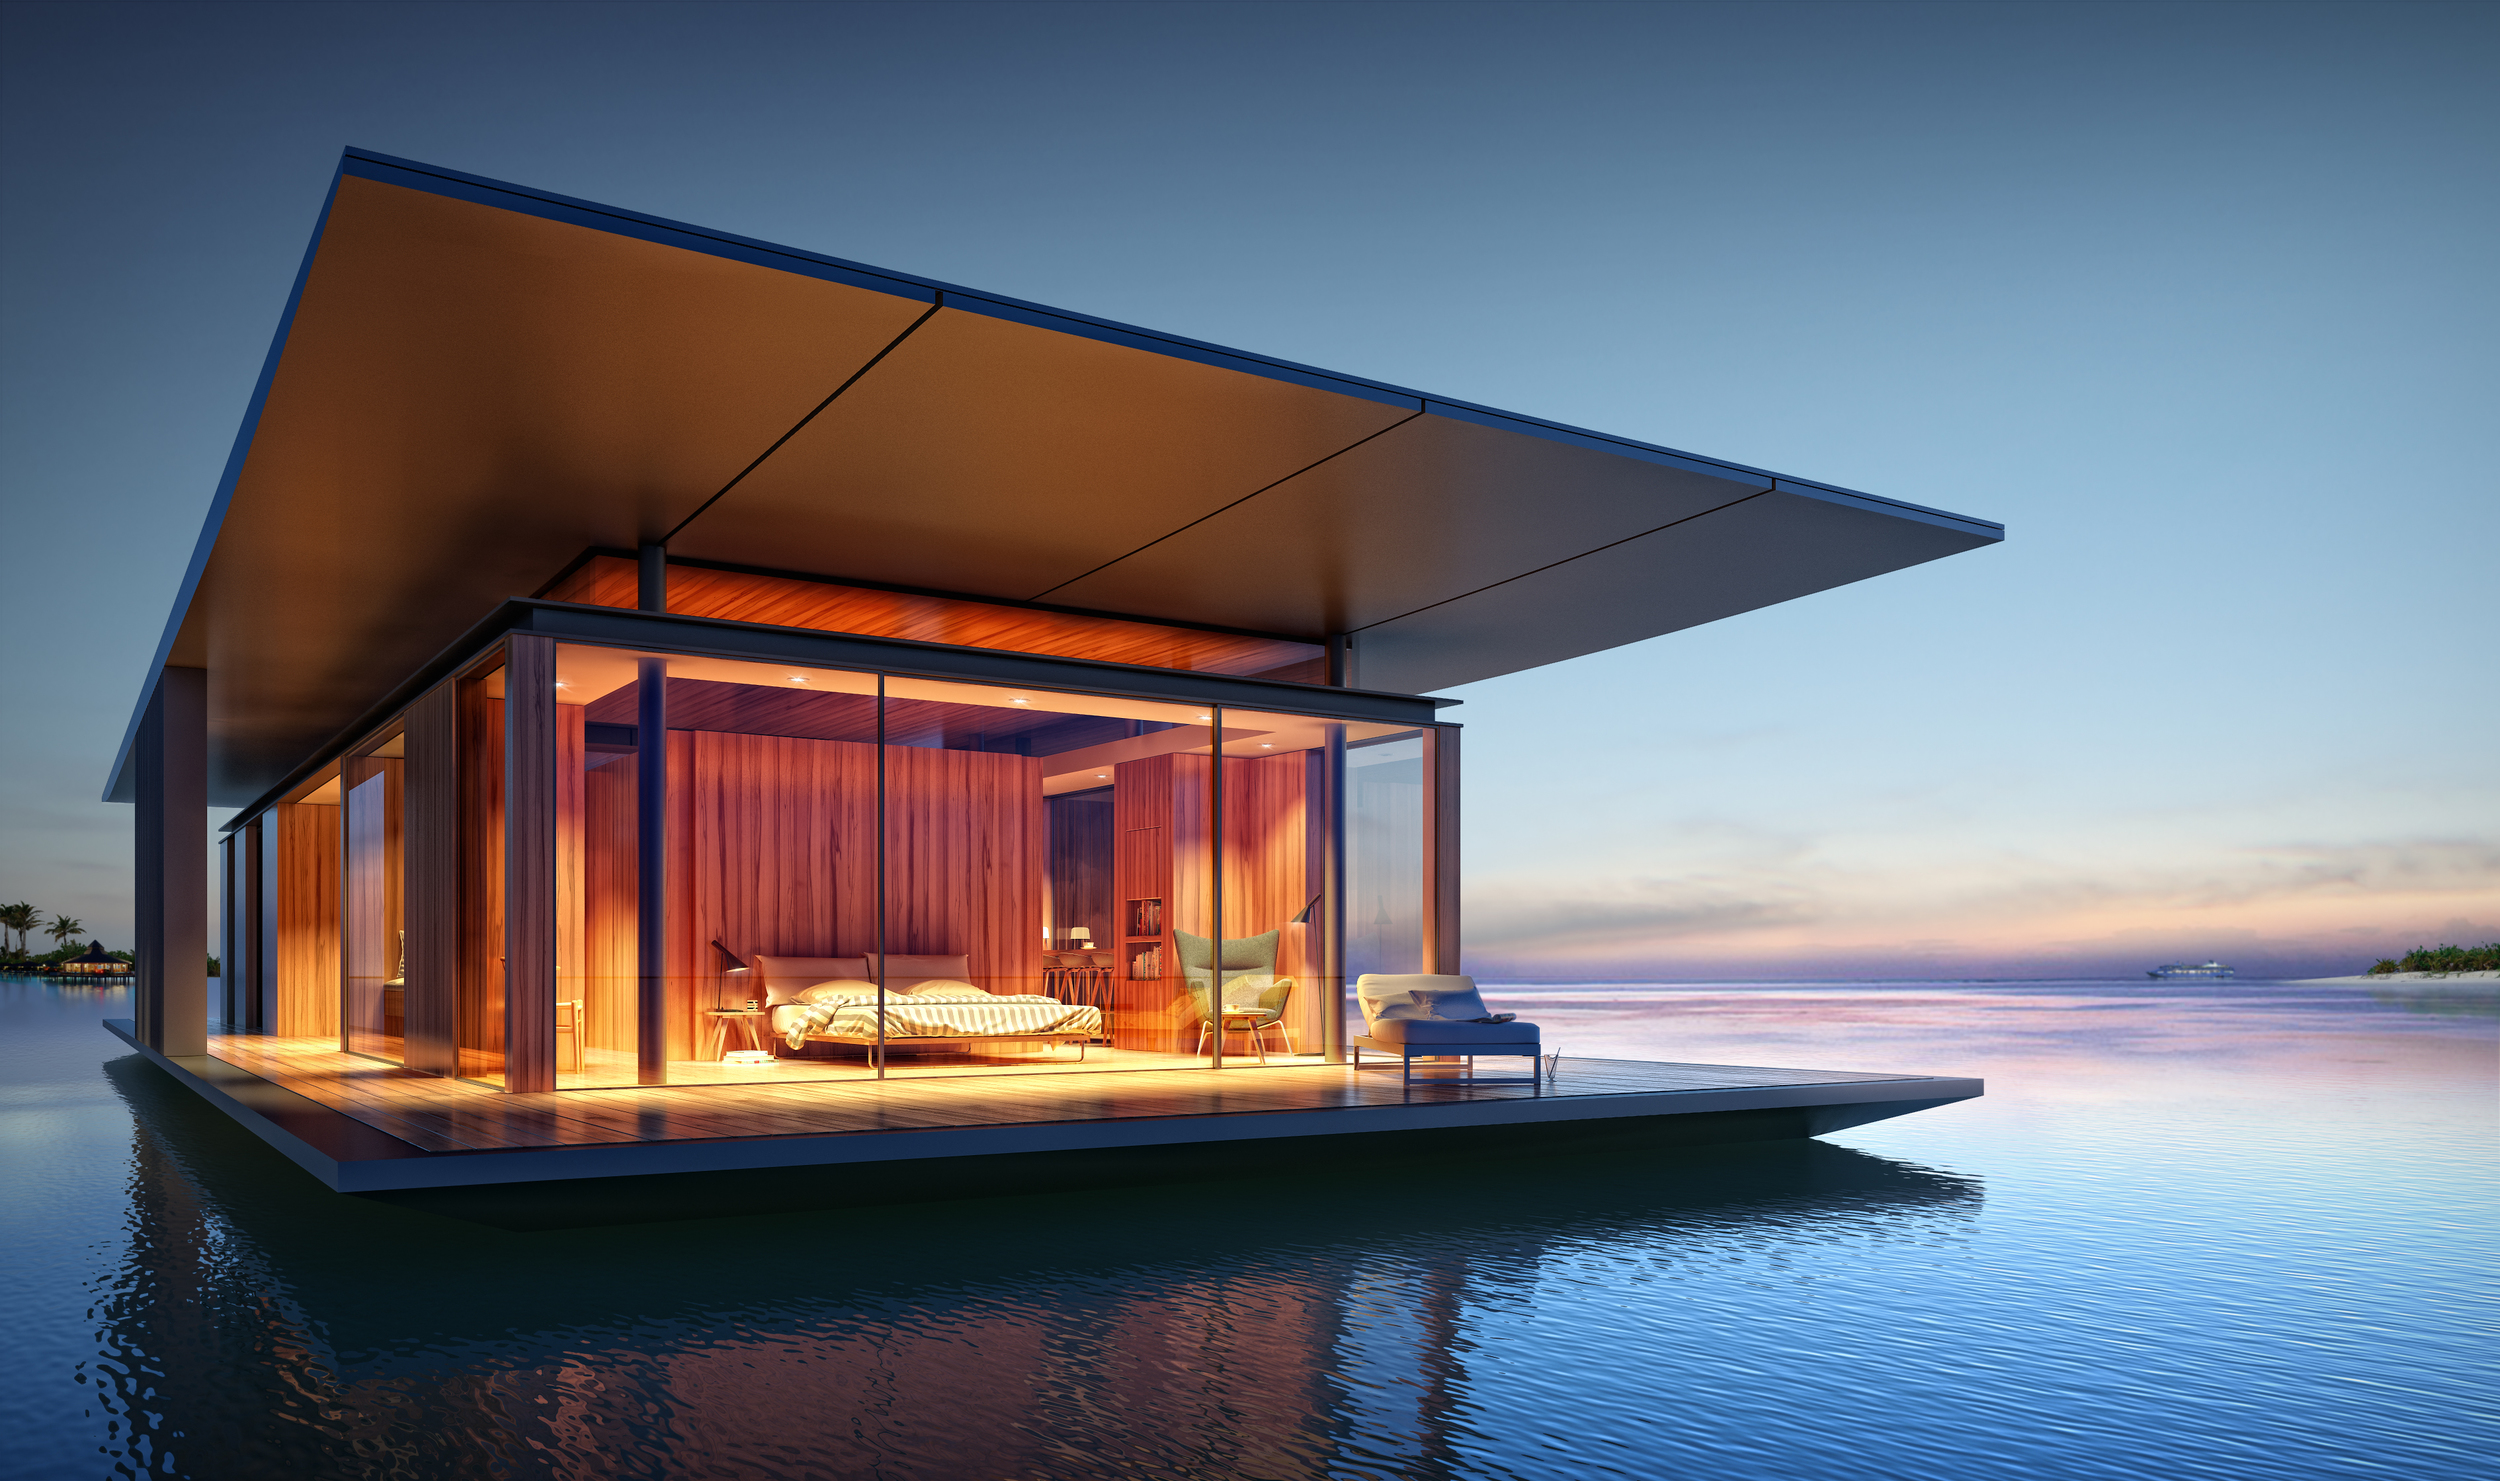 Floating House concept by Dymitr Malcew